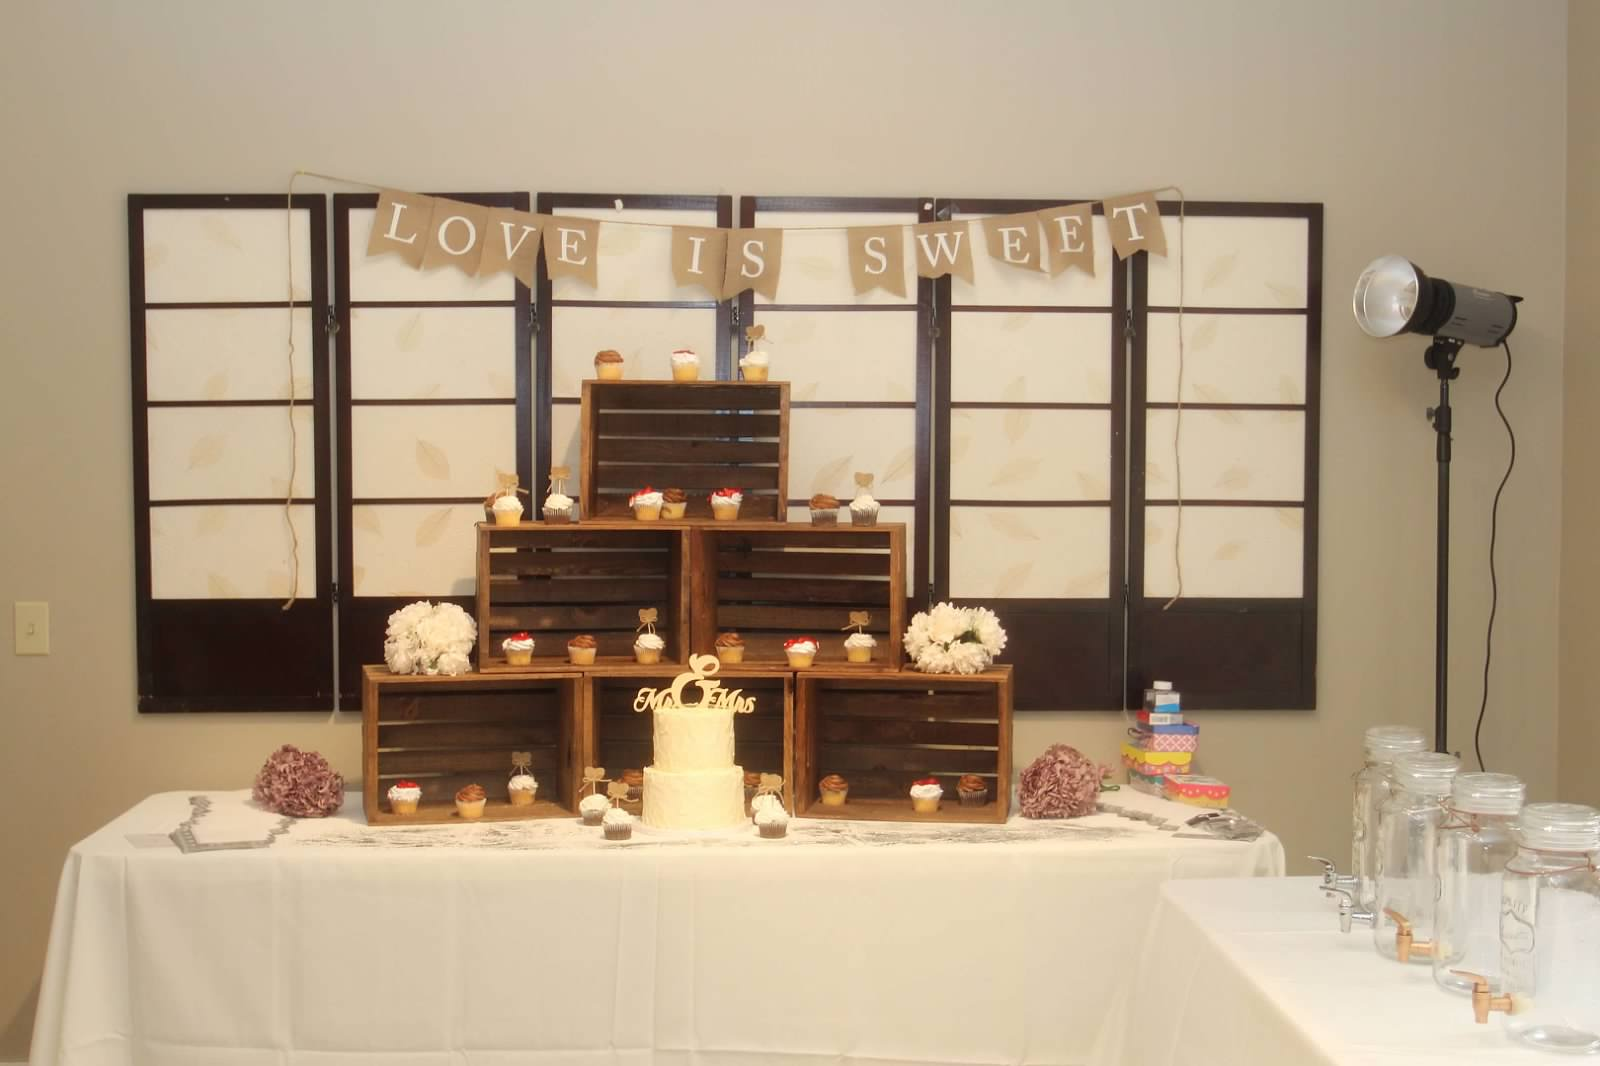 Cake table - Copy